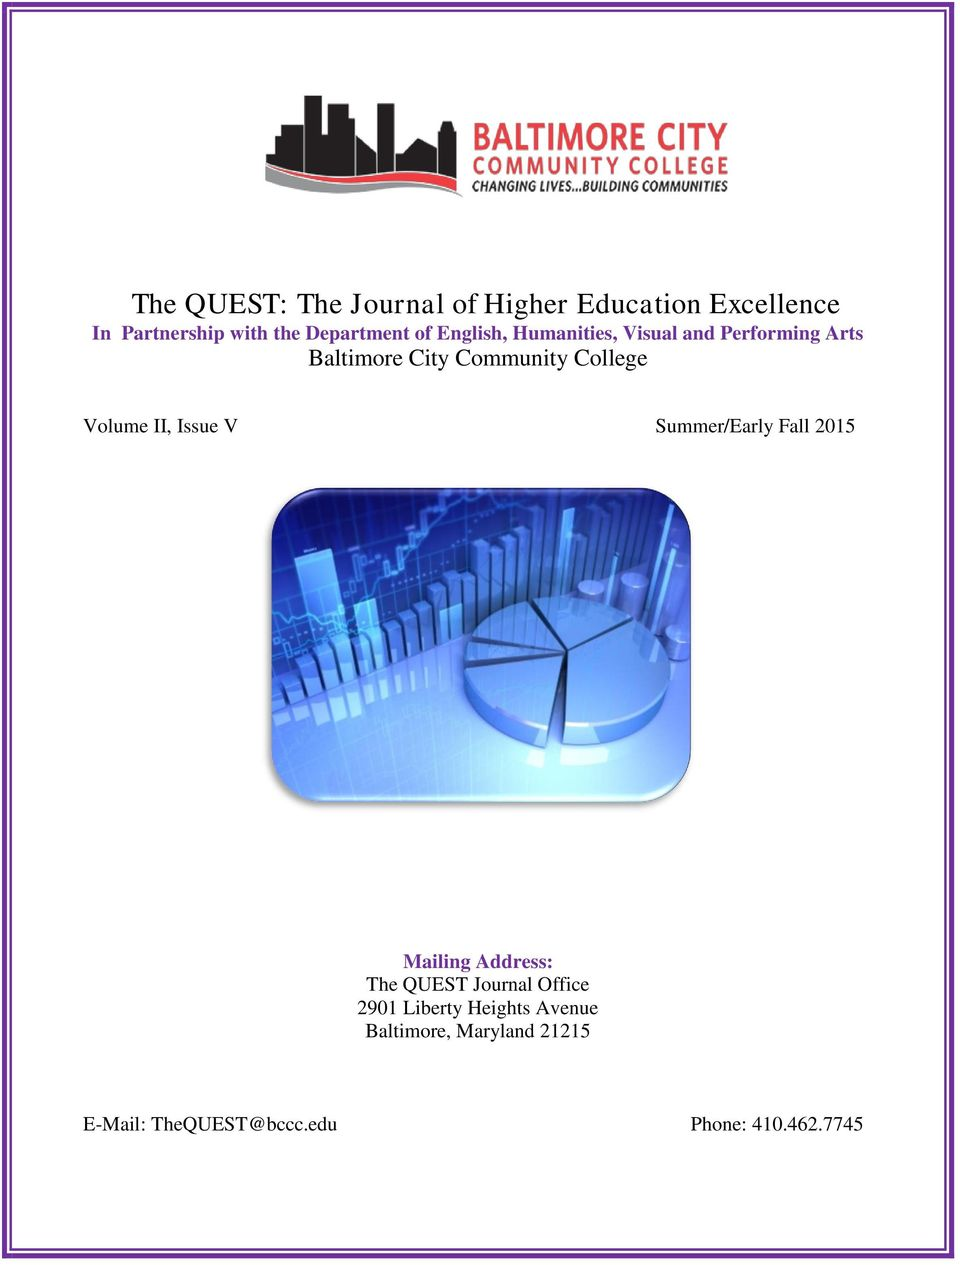 Volume II, Issue V Summer/Early Fall 2015 Mailing Address: The QUEST Journal Office 2901